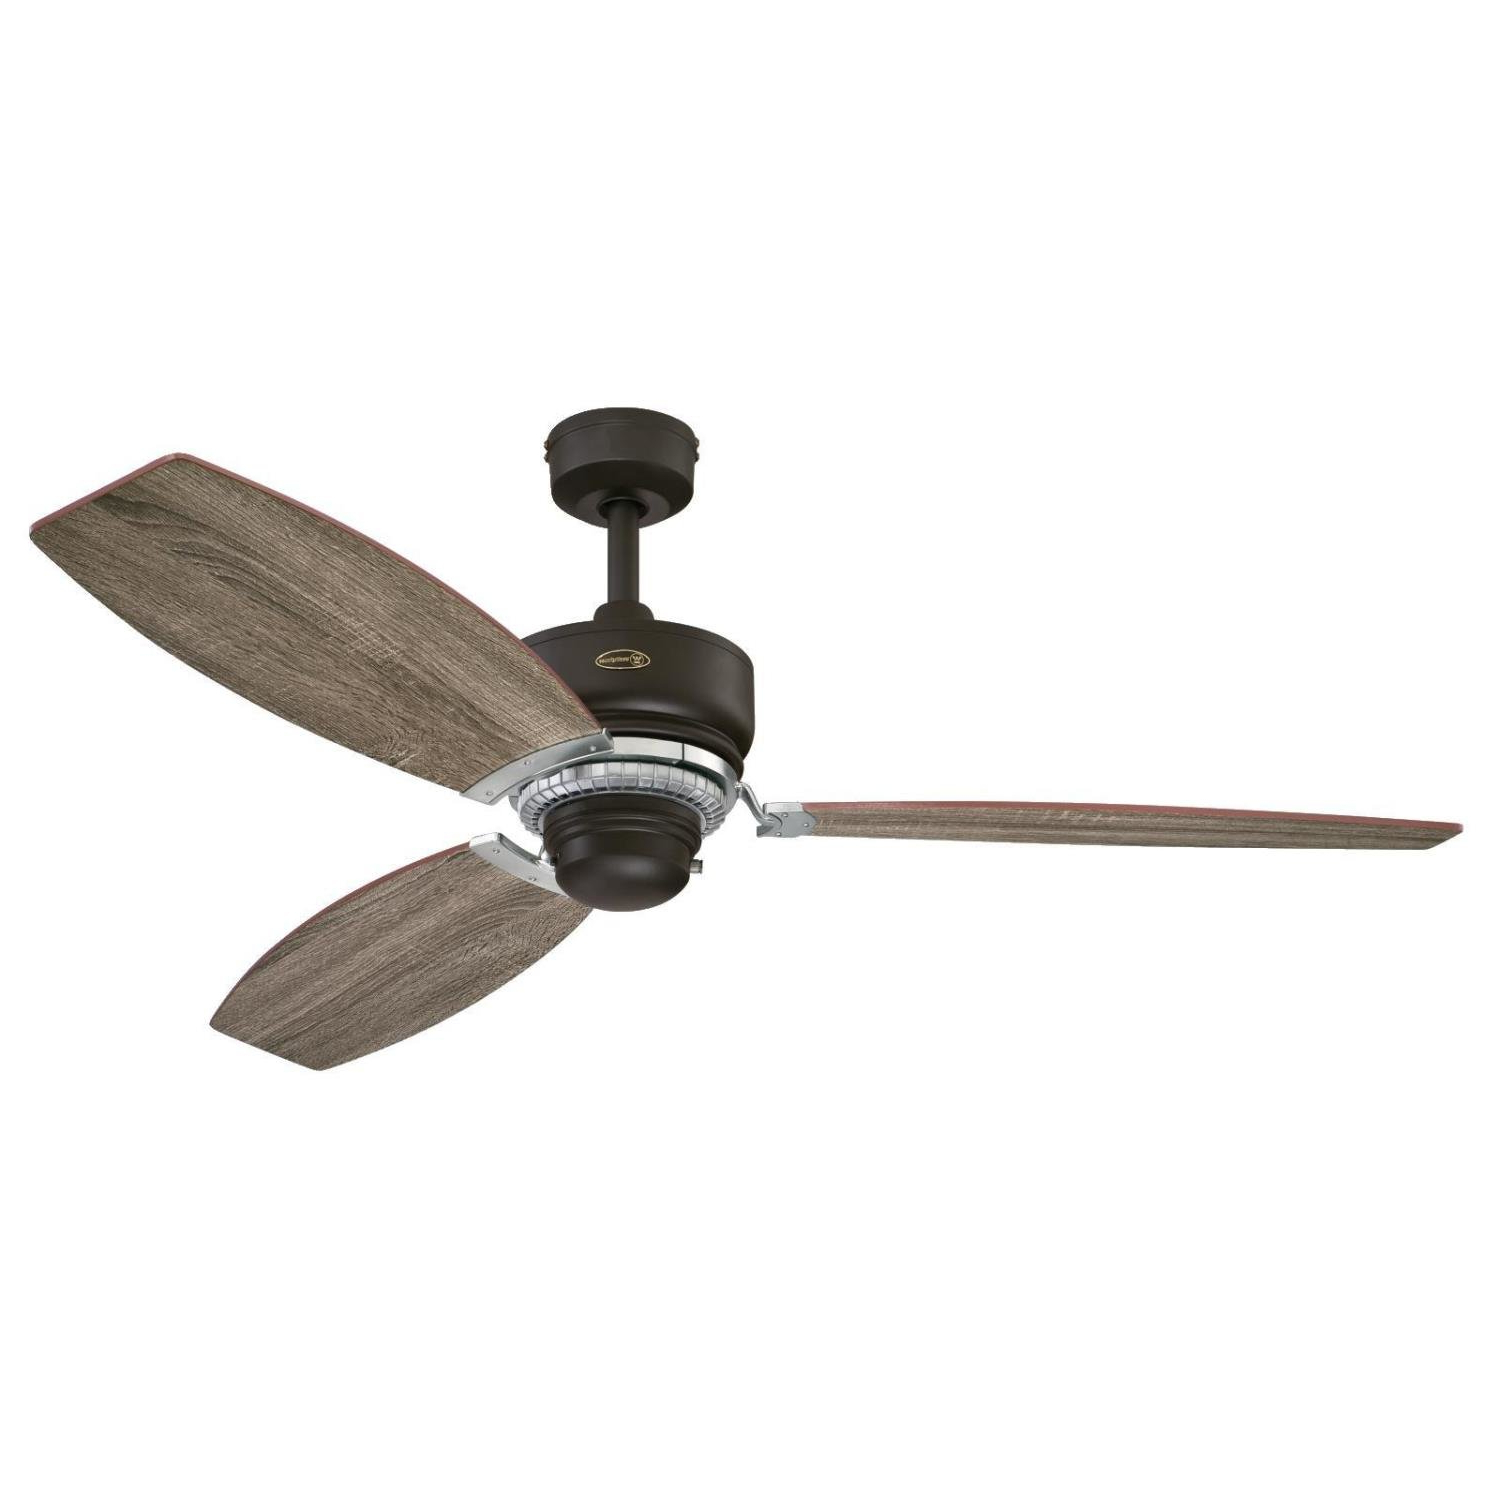 Kyla 5 Blade Ceiling Fans Throughout Well Known Modern Trent Austin Design Ceiling Fans (View 13 of 20)